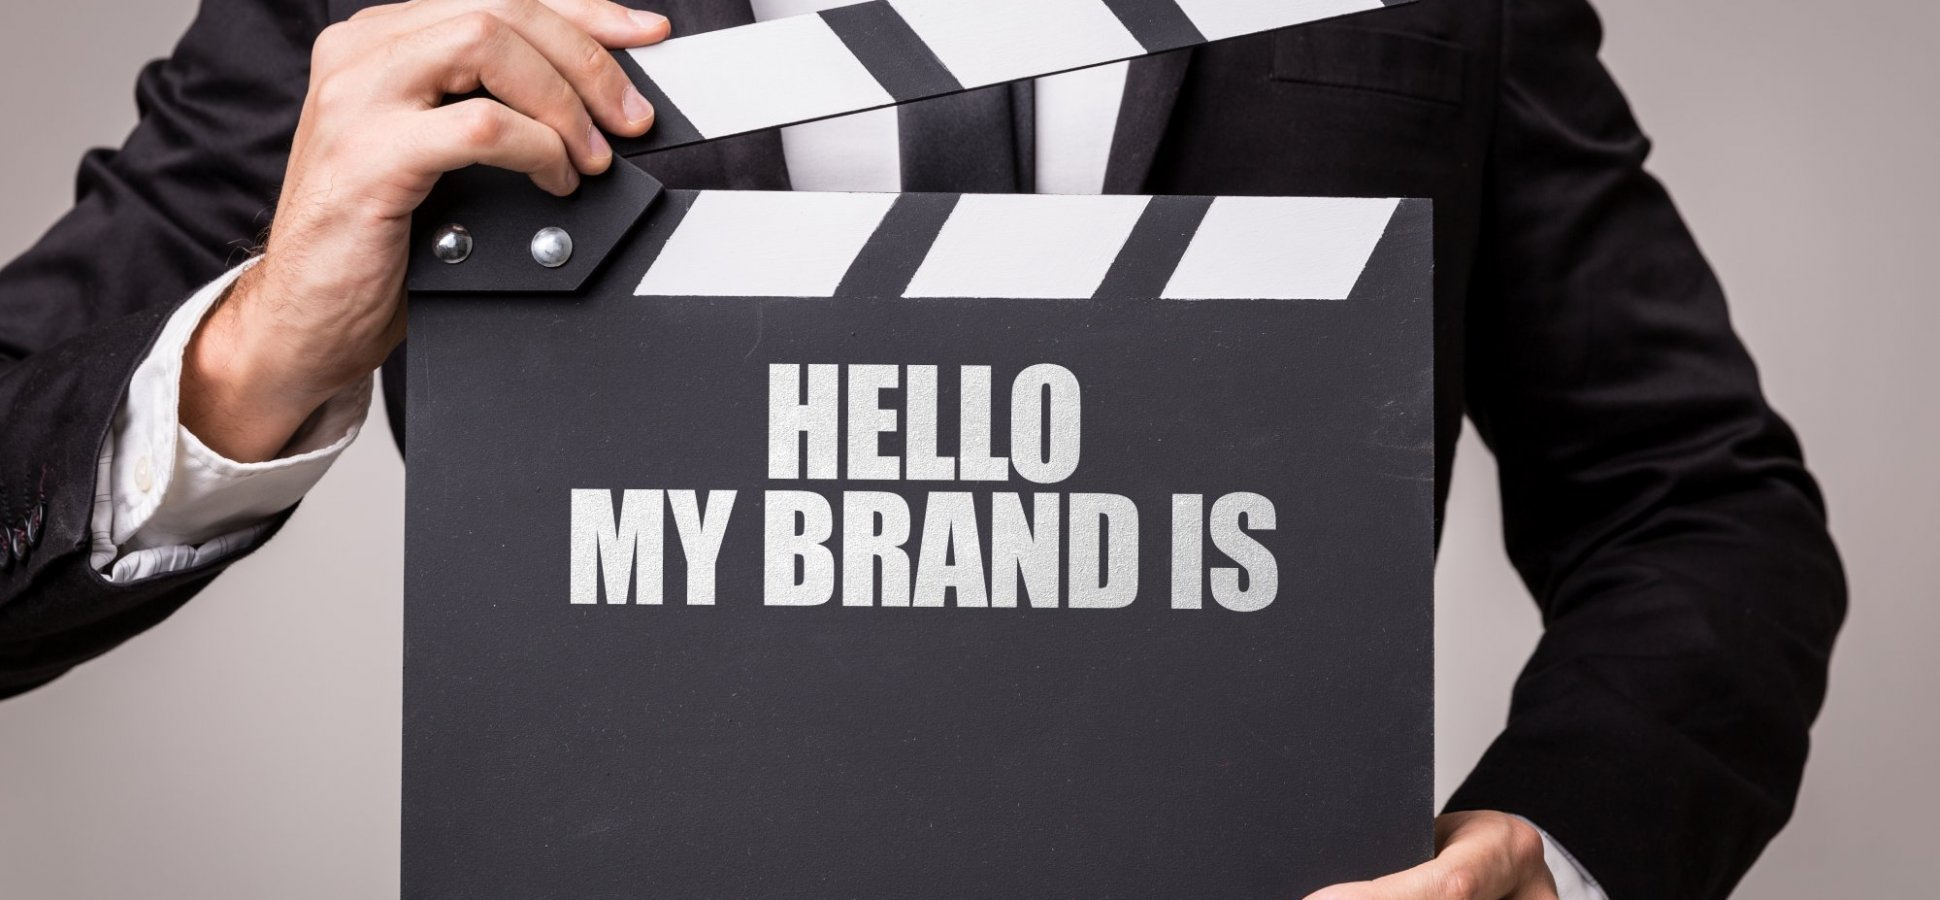 5 Tips for Building Your Personal Brand   Inc.com